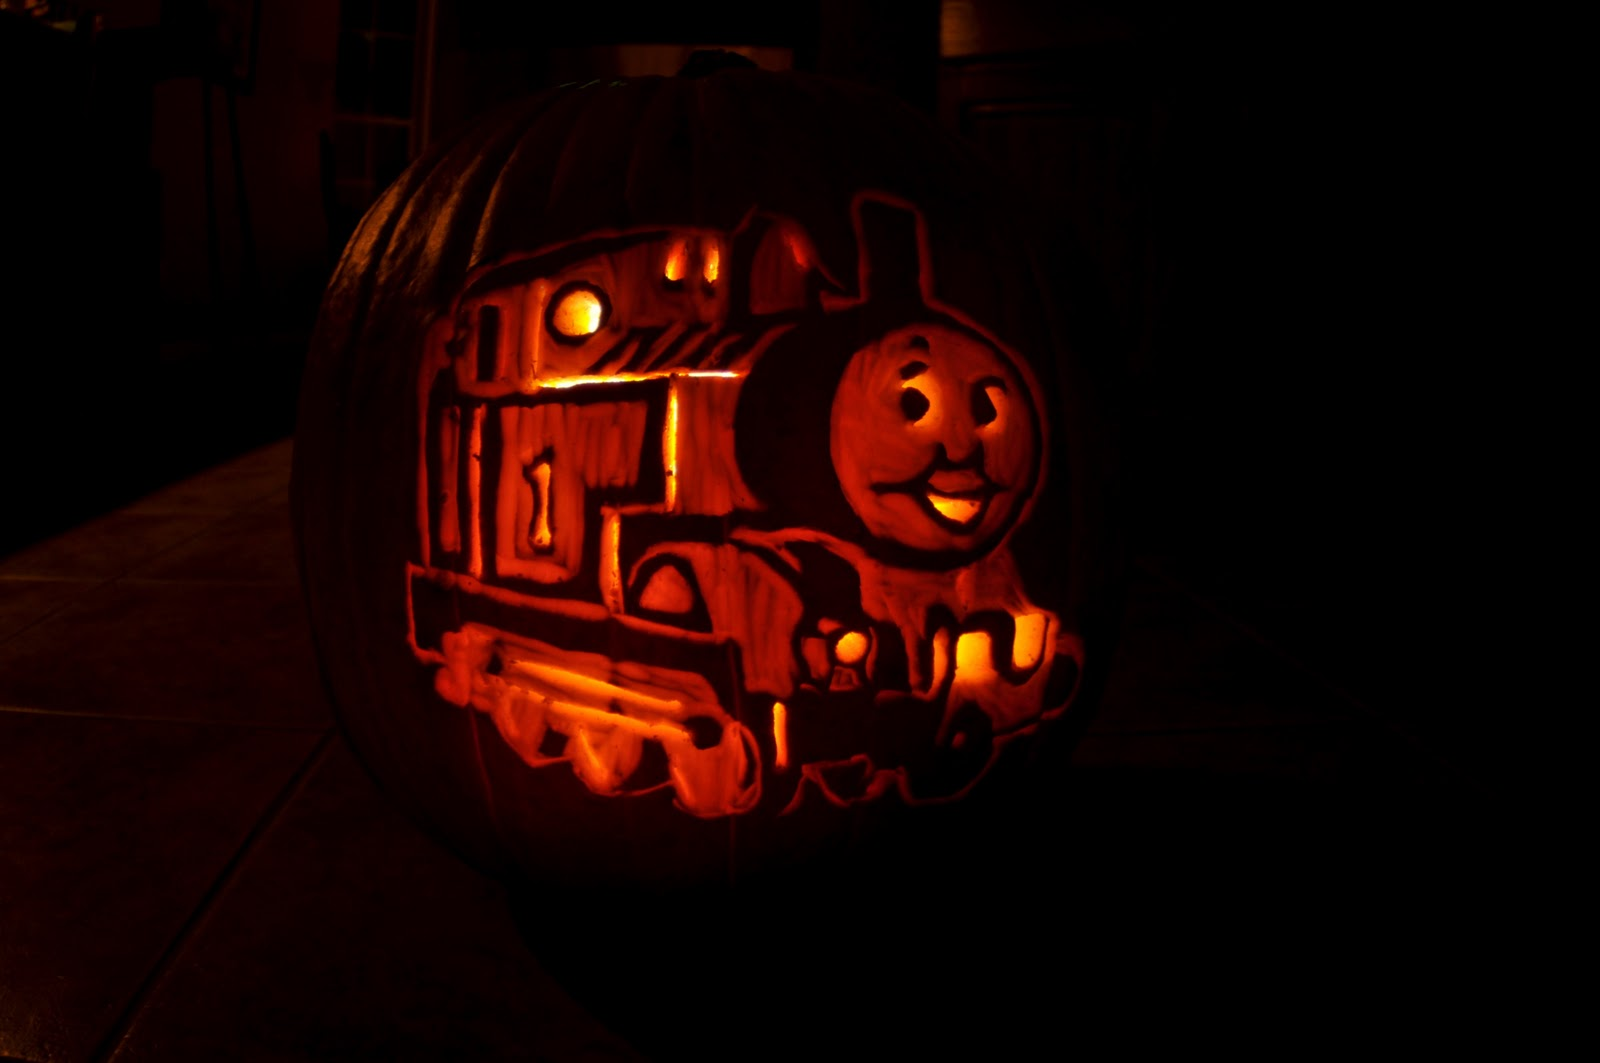 Cool halloween pumpkin 39 jack o 39 lanterns 39 designs for Thomas pumpkin template